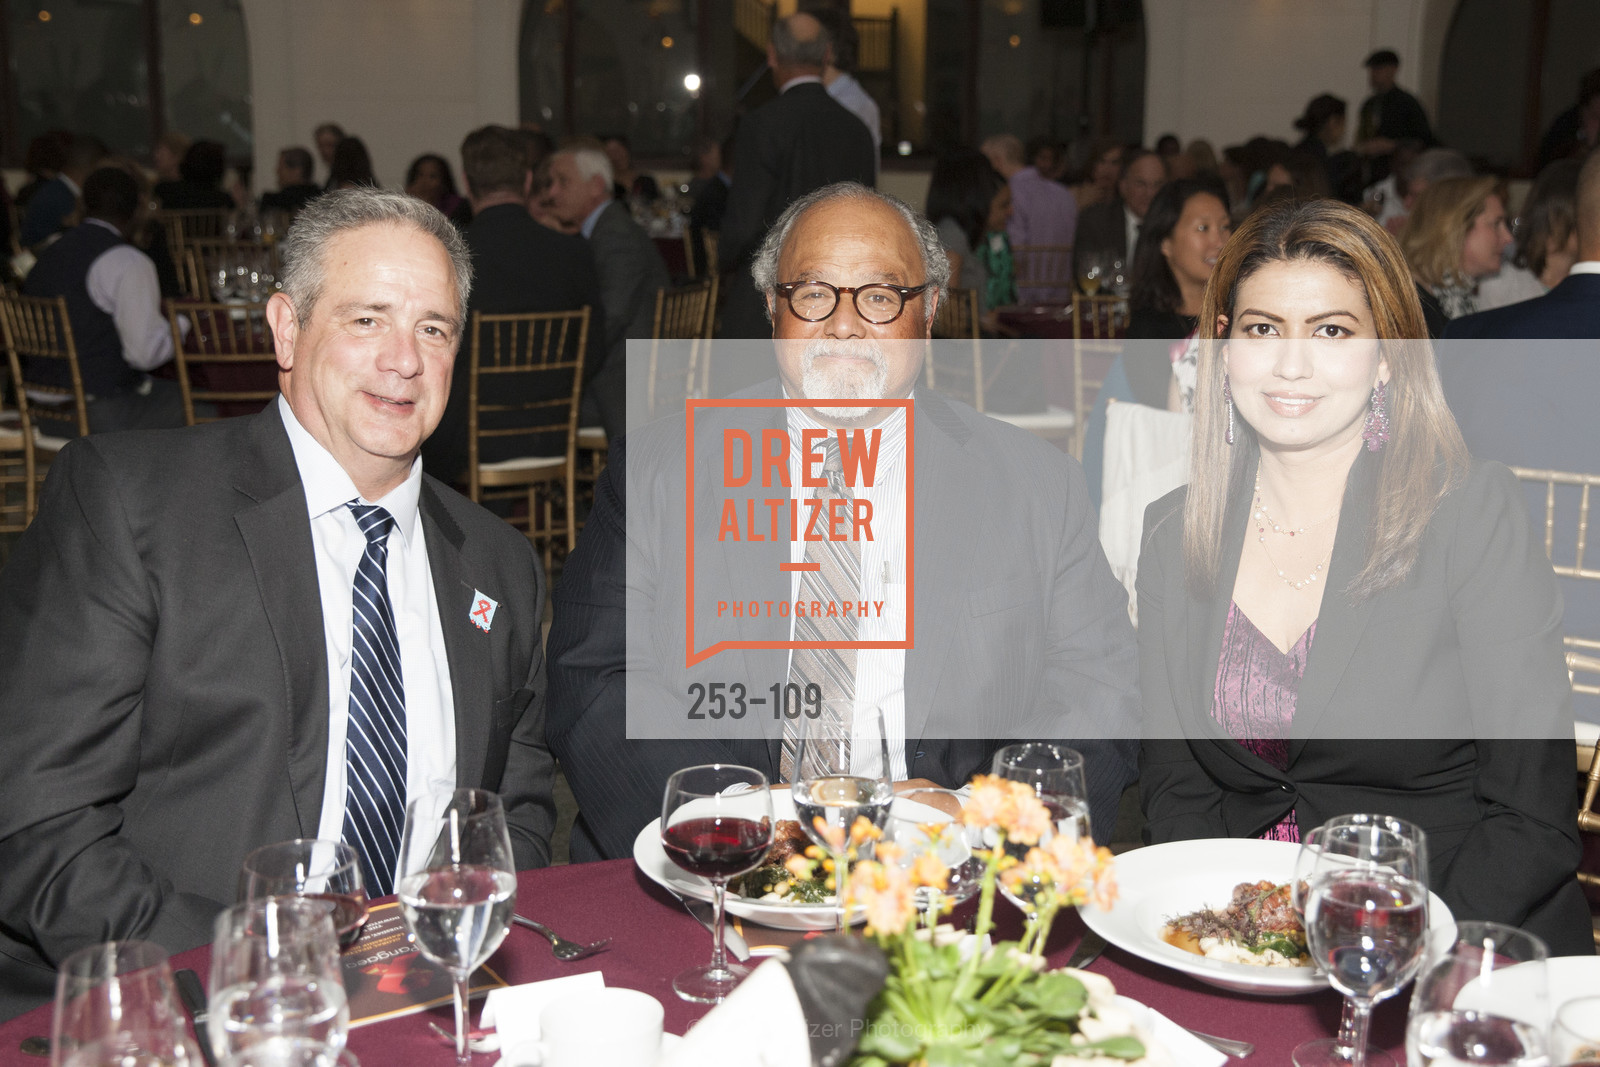 Eric Goosey, Huma Abbasi, PANGAEA GLOBAL HEALTH Leadership Dinner at Rotunda in Oakland, The Rotunda. Oakland, May 11th, 2015,Drew Altizer, Drew Altizer Photography, full-service agency, private events, San Francisco photographer, photographer california